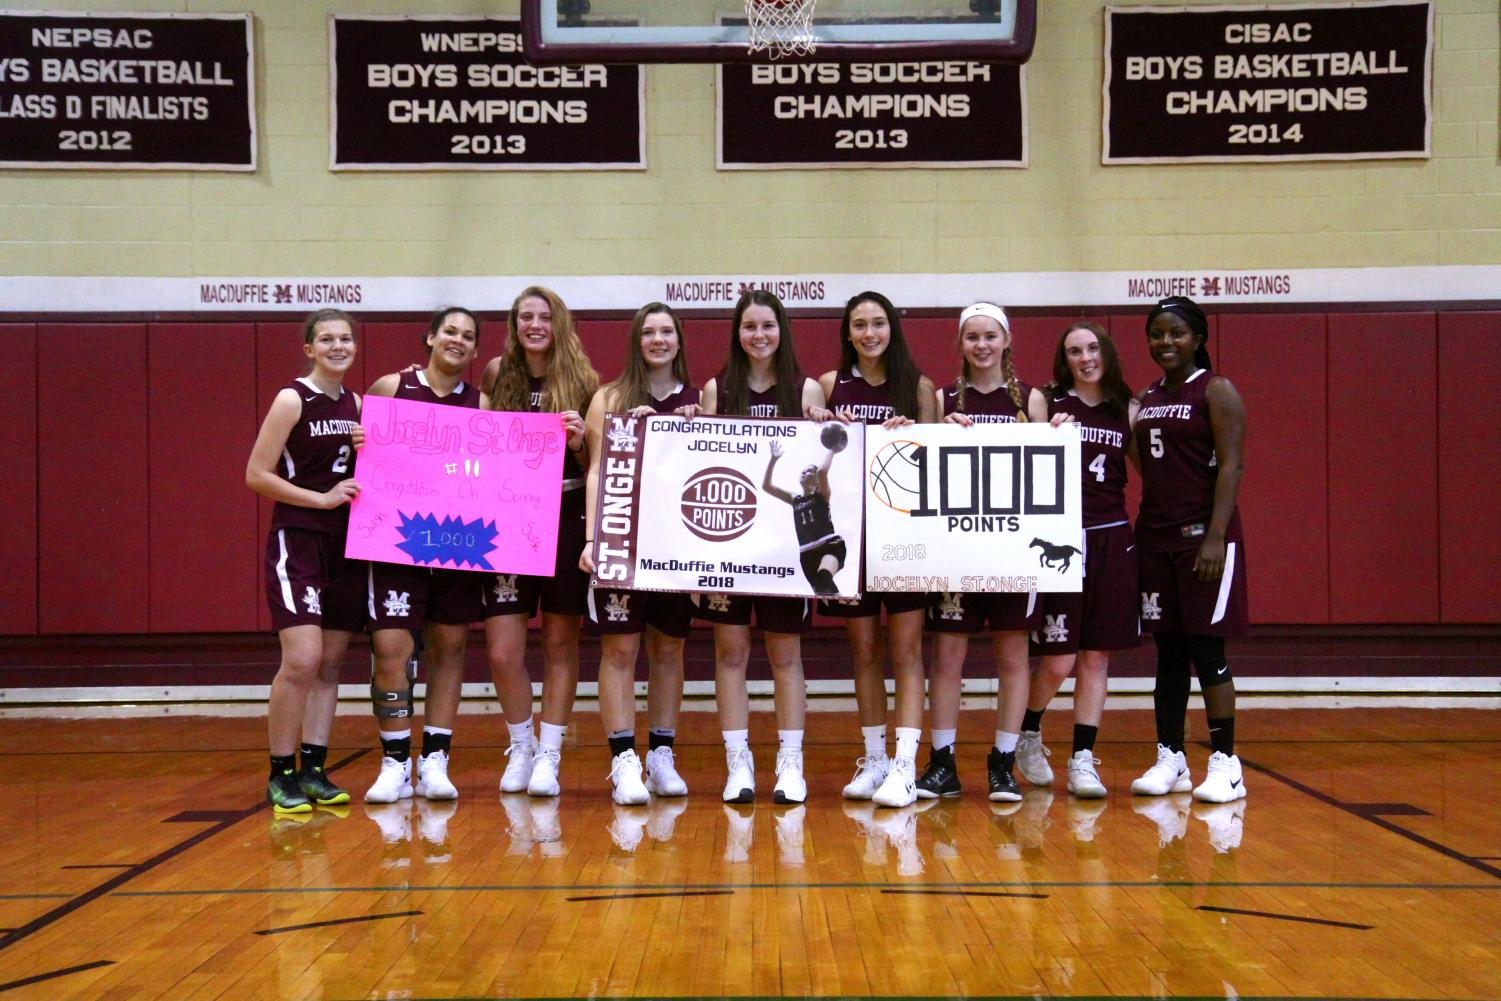 MacDuffie Girls Varsity Basketball team poses with senior Jocelyn St. Onge after she scored her thousandth point on January 6th, 2018. PC: Amy Cauley